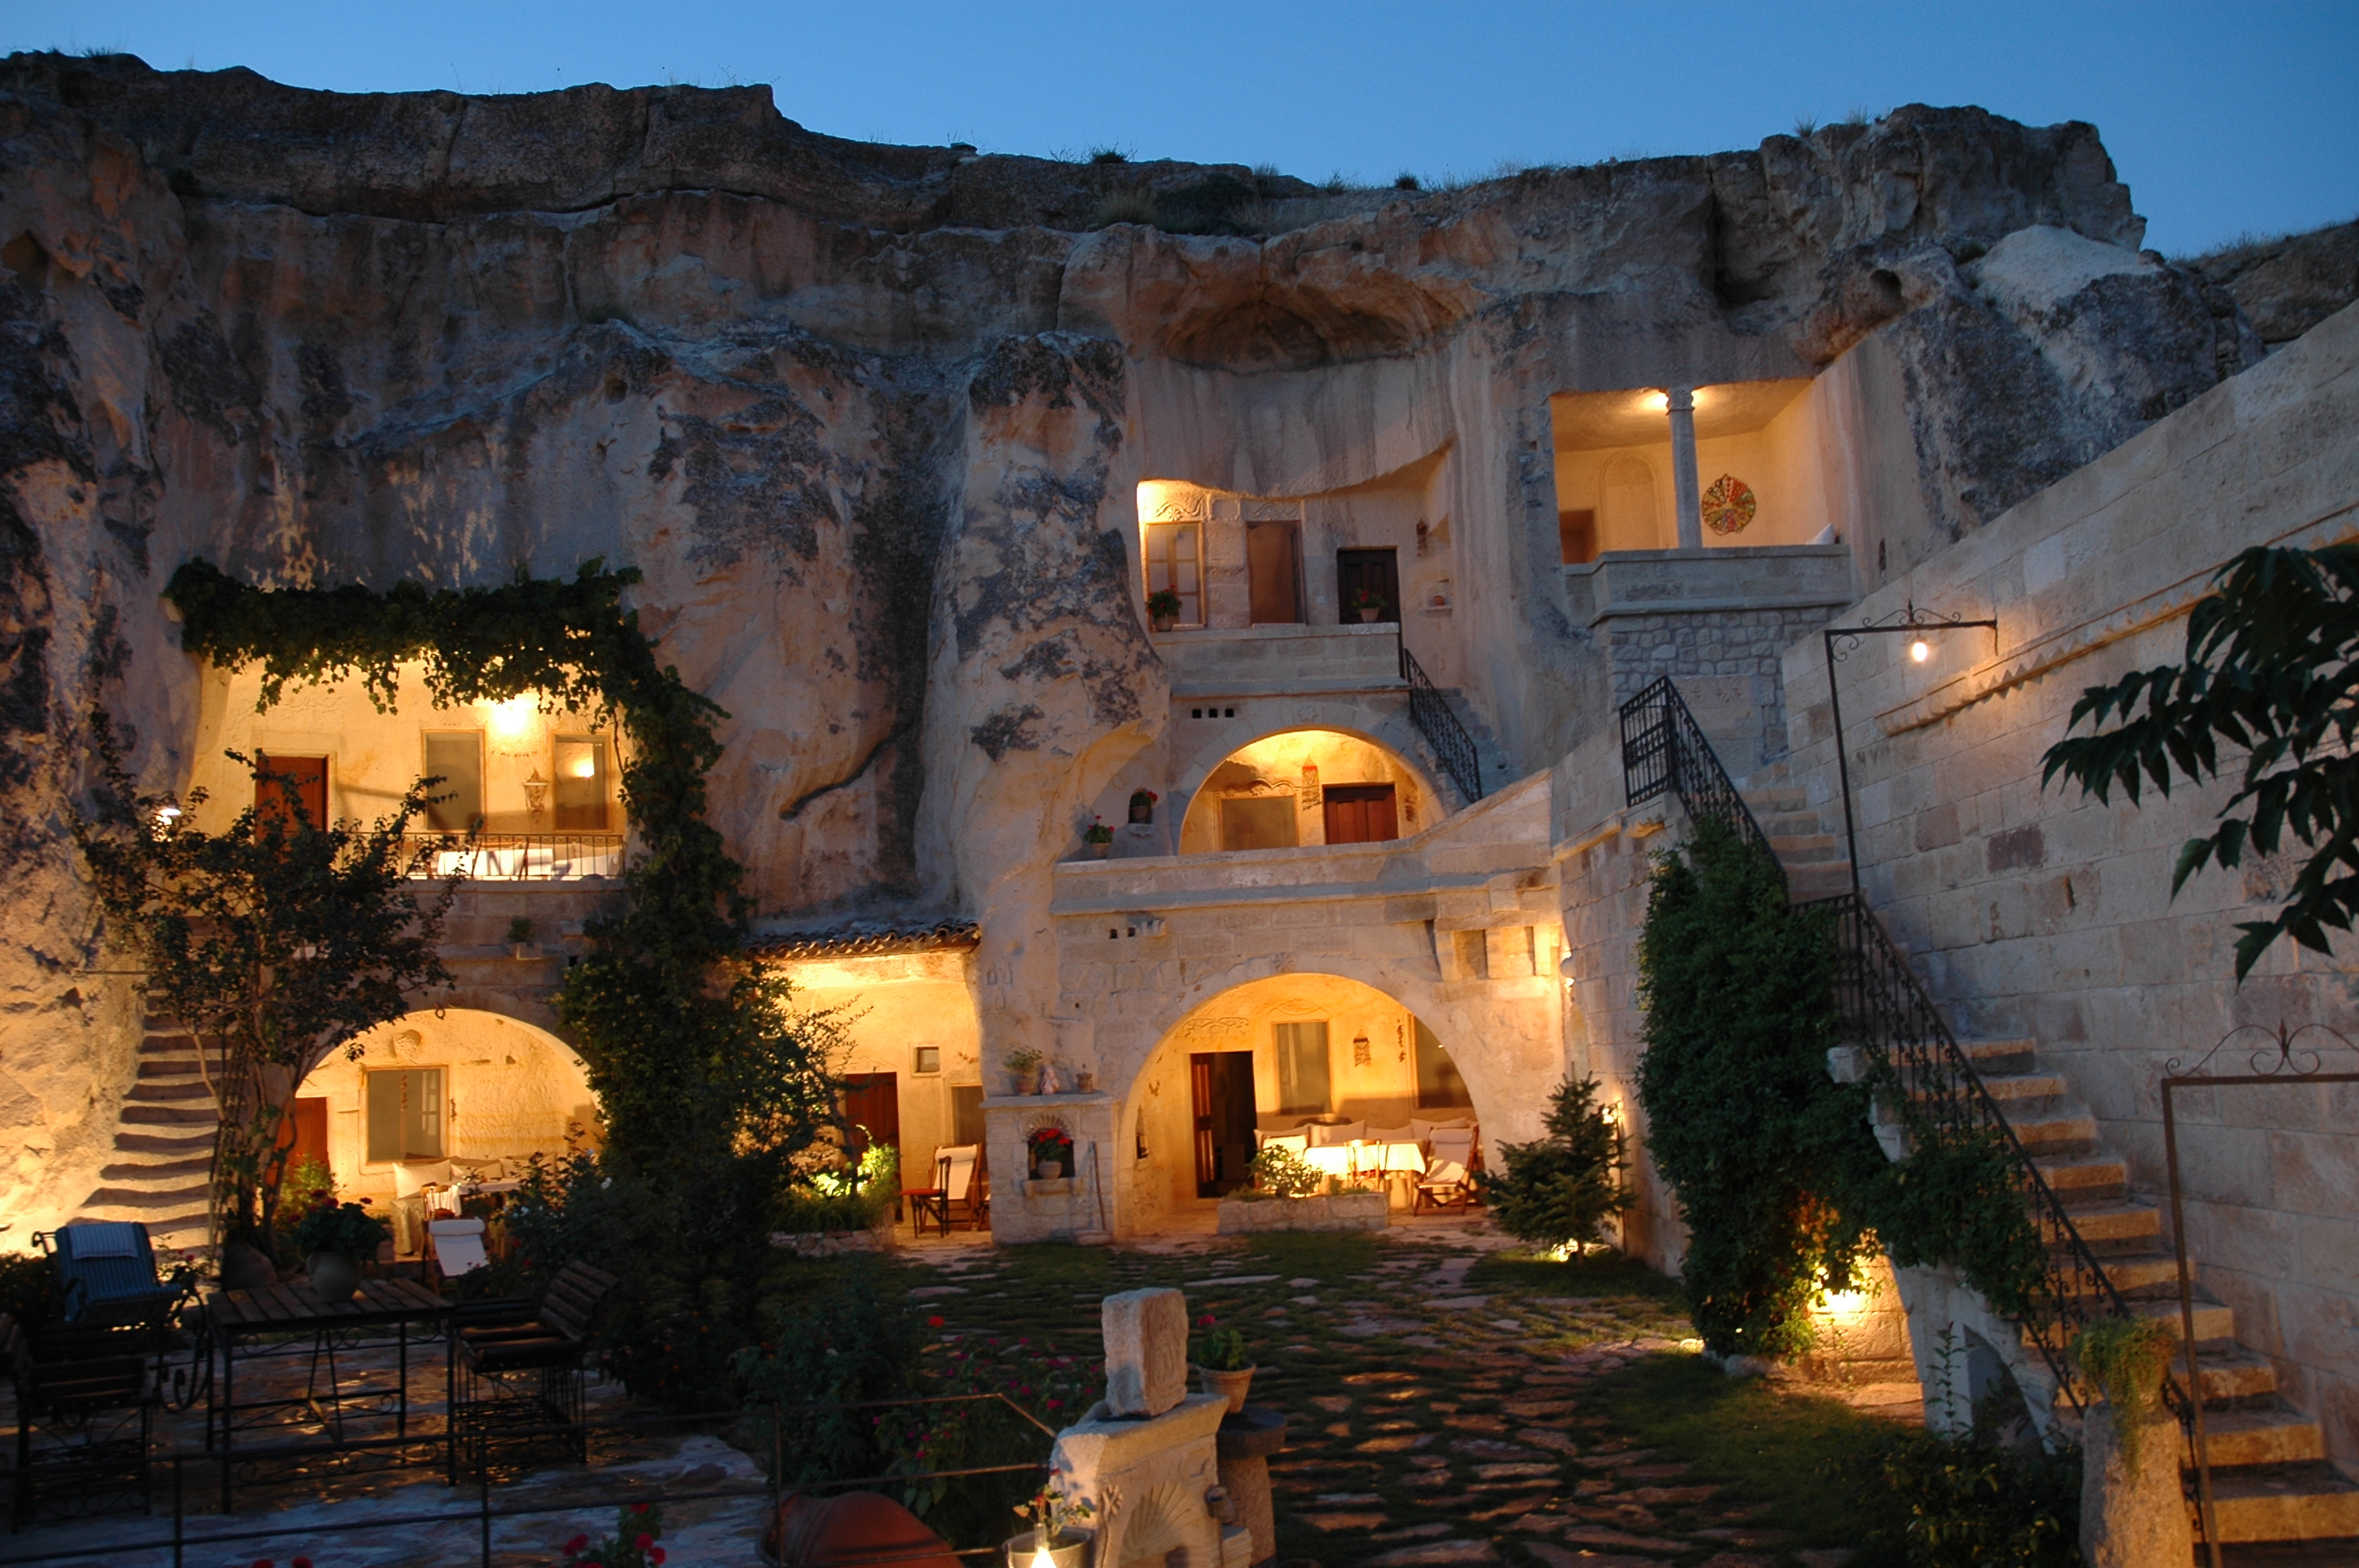 https://allengeorgina.files.wordpress.com/2013/11/dream-cave-pension-otel-goreme.jpg